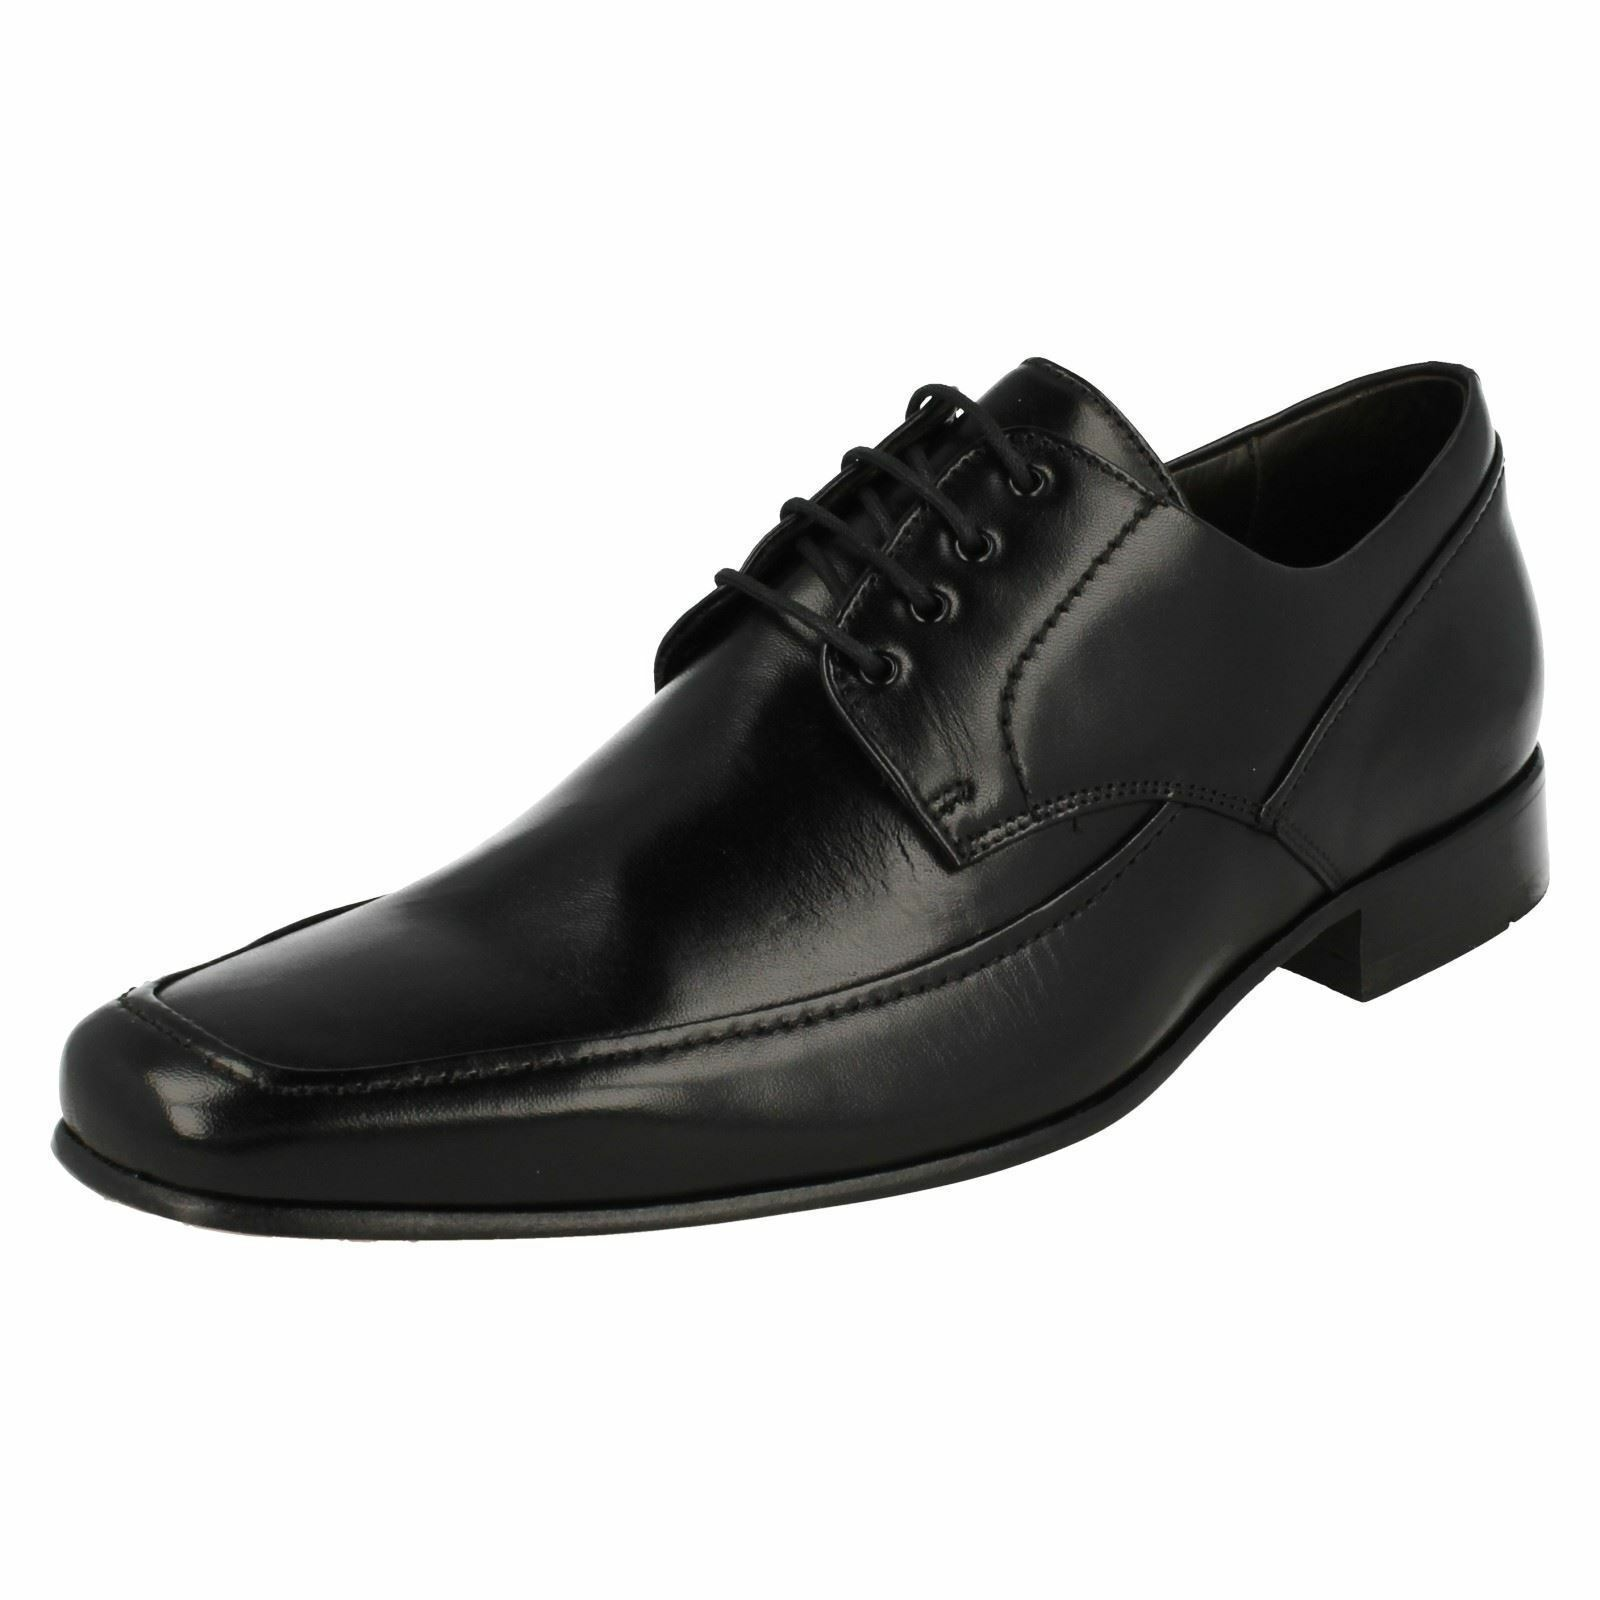 Formal Uomo Anatomic Prime Formal  Schuhes - Salvador 2 af0367